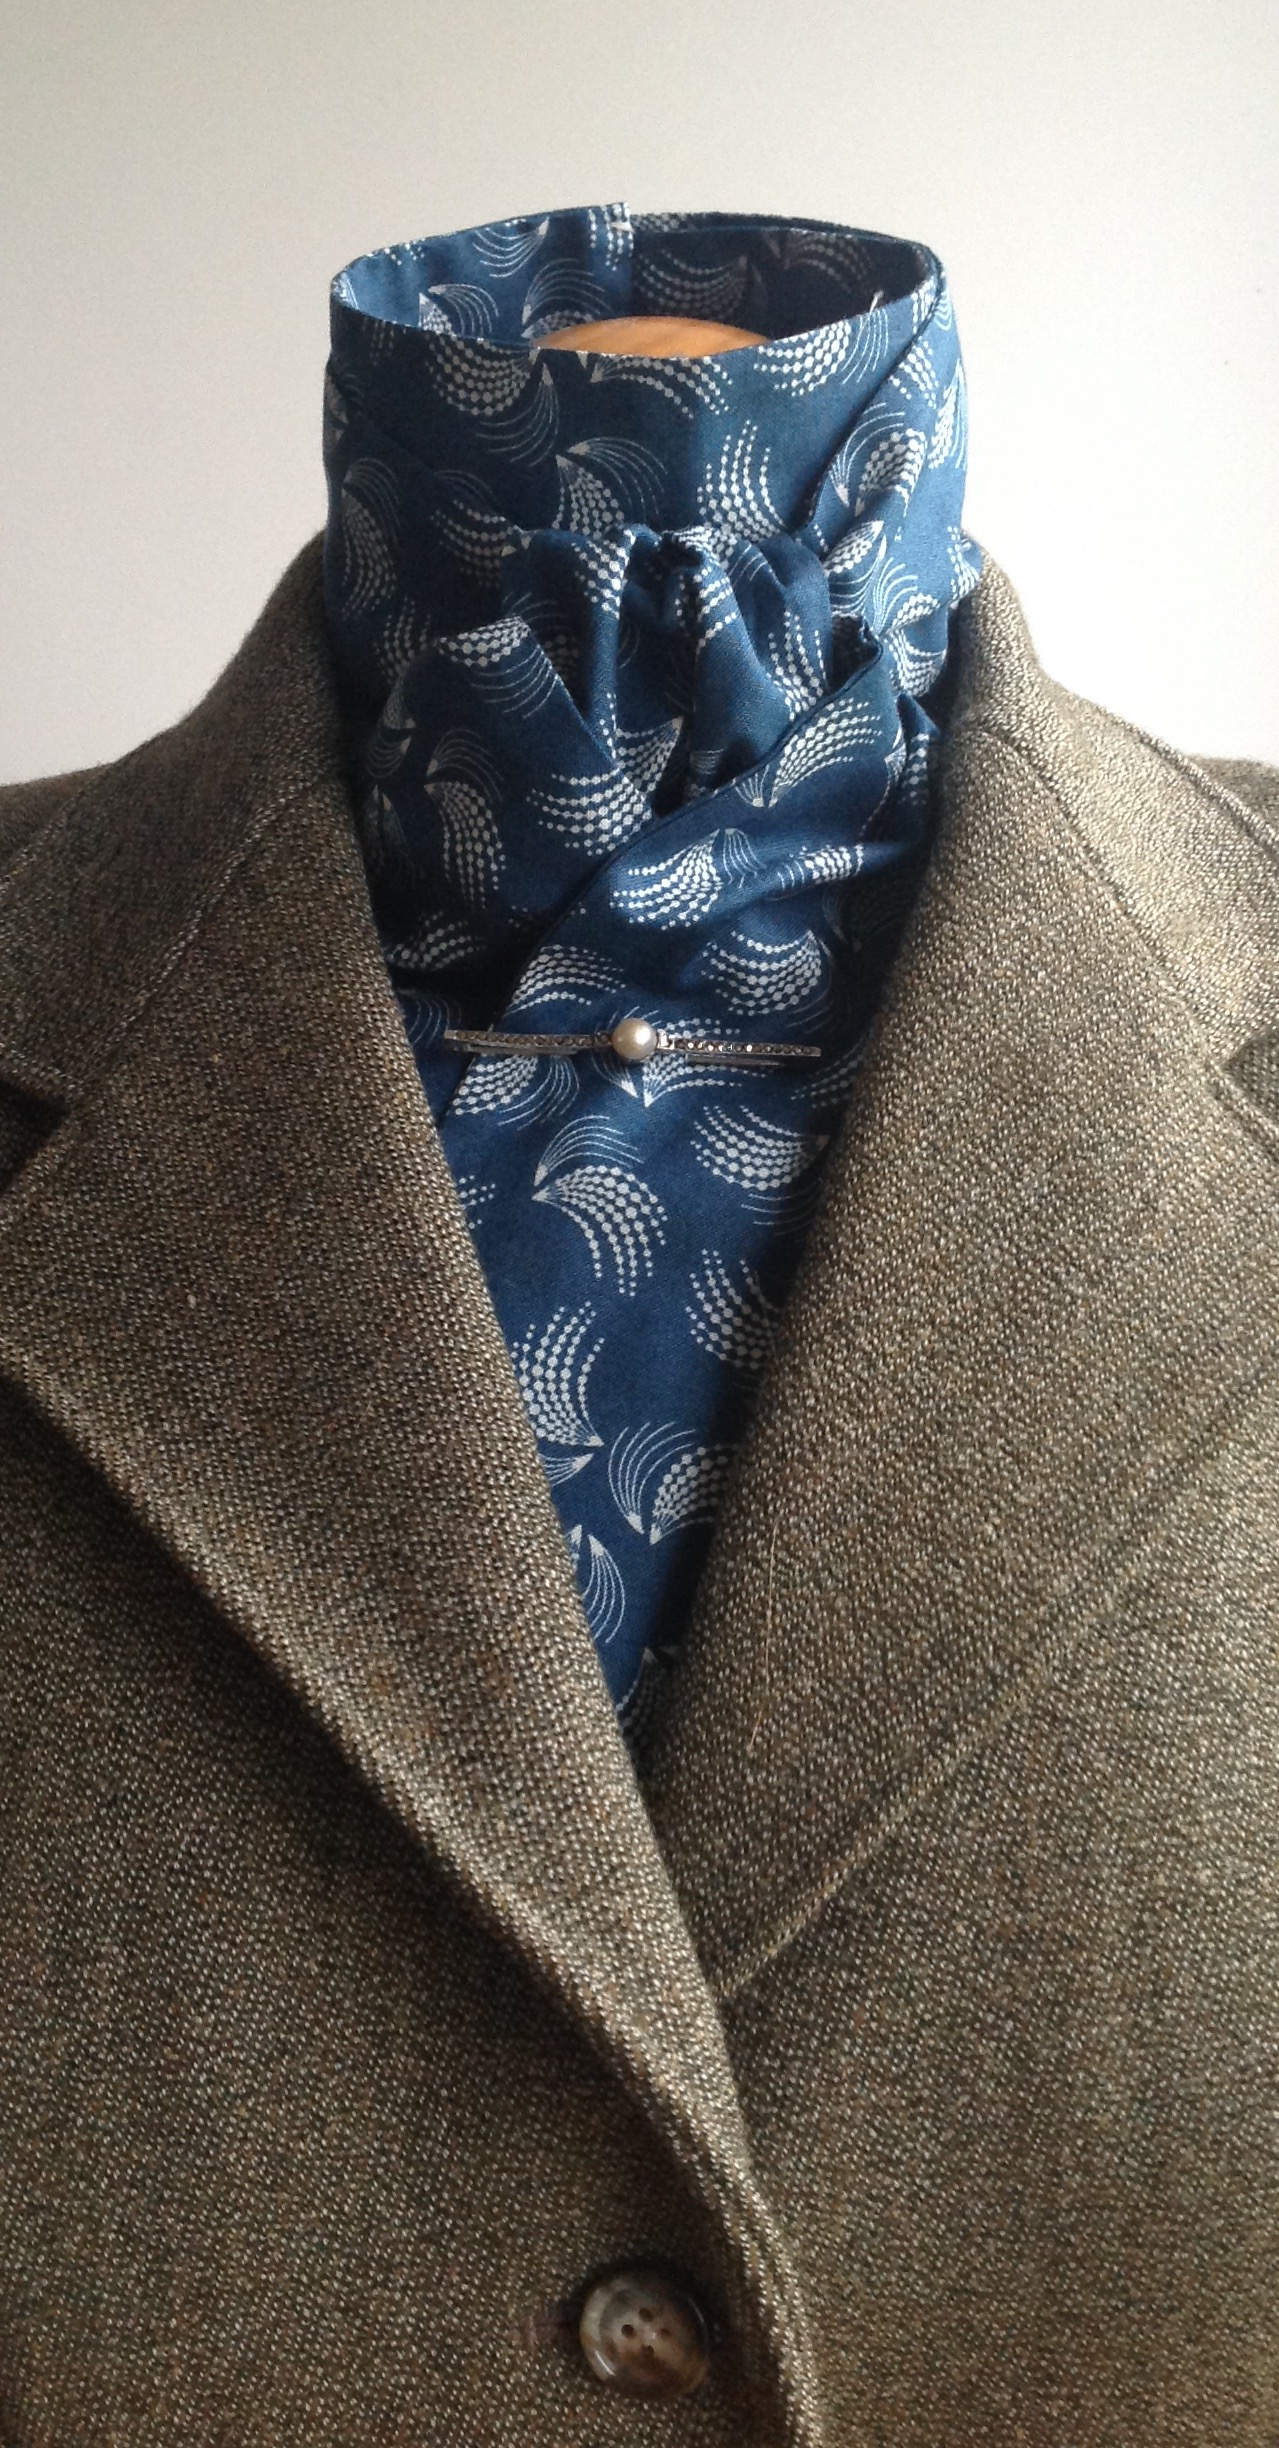 Shaped to tie 100% cotton stock - Seaspray print in French navy and cream